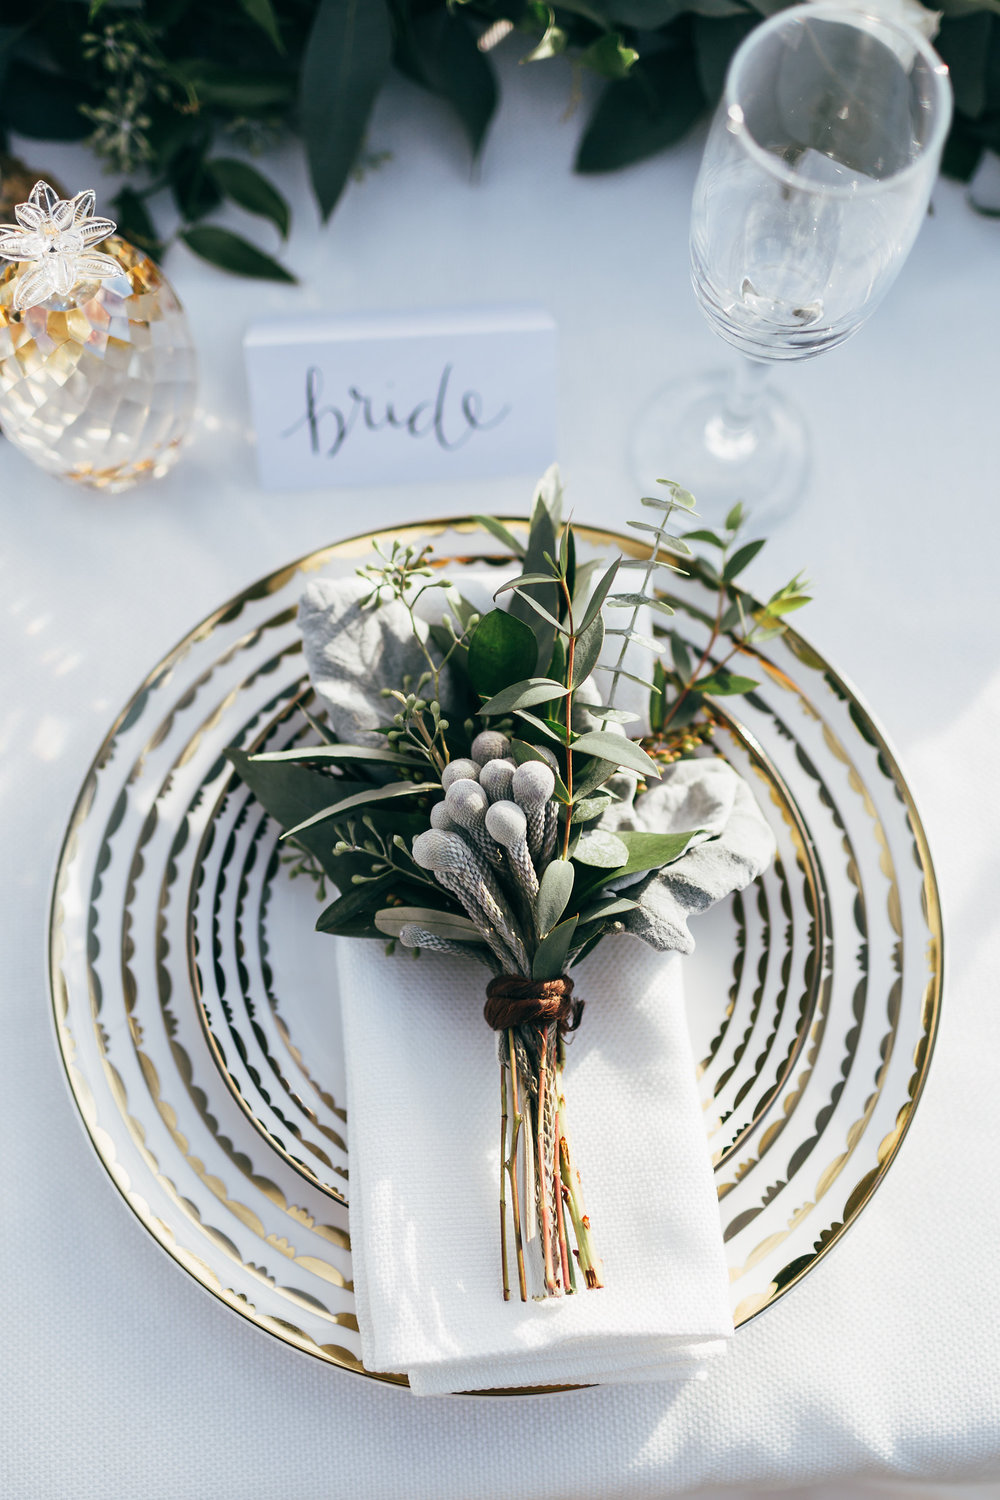 Fern & Frond Floral Design - Love in the Badlands